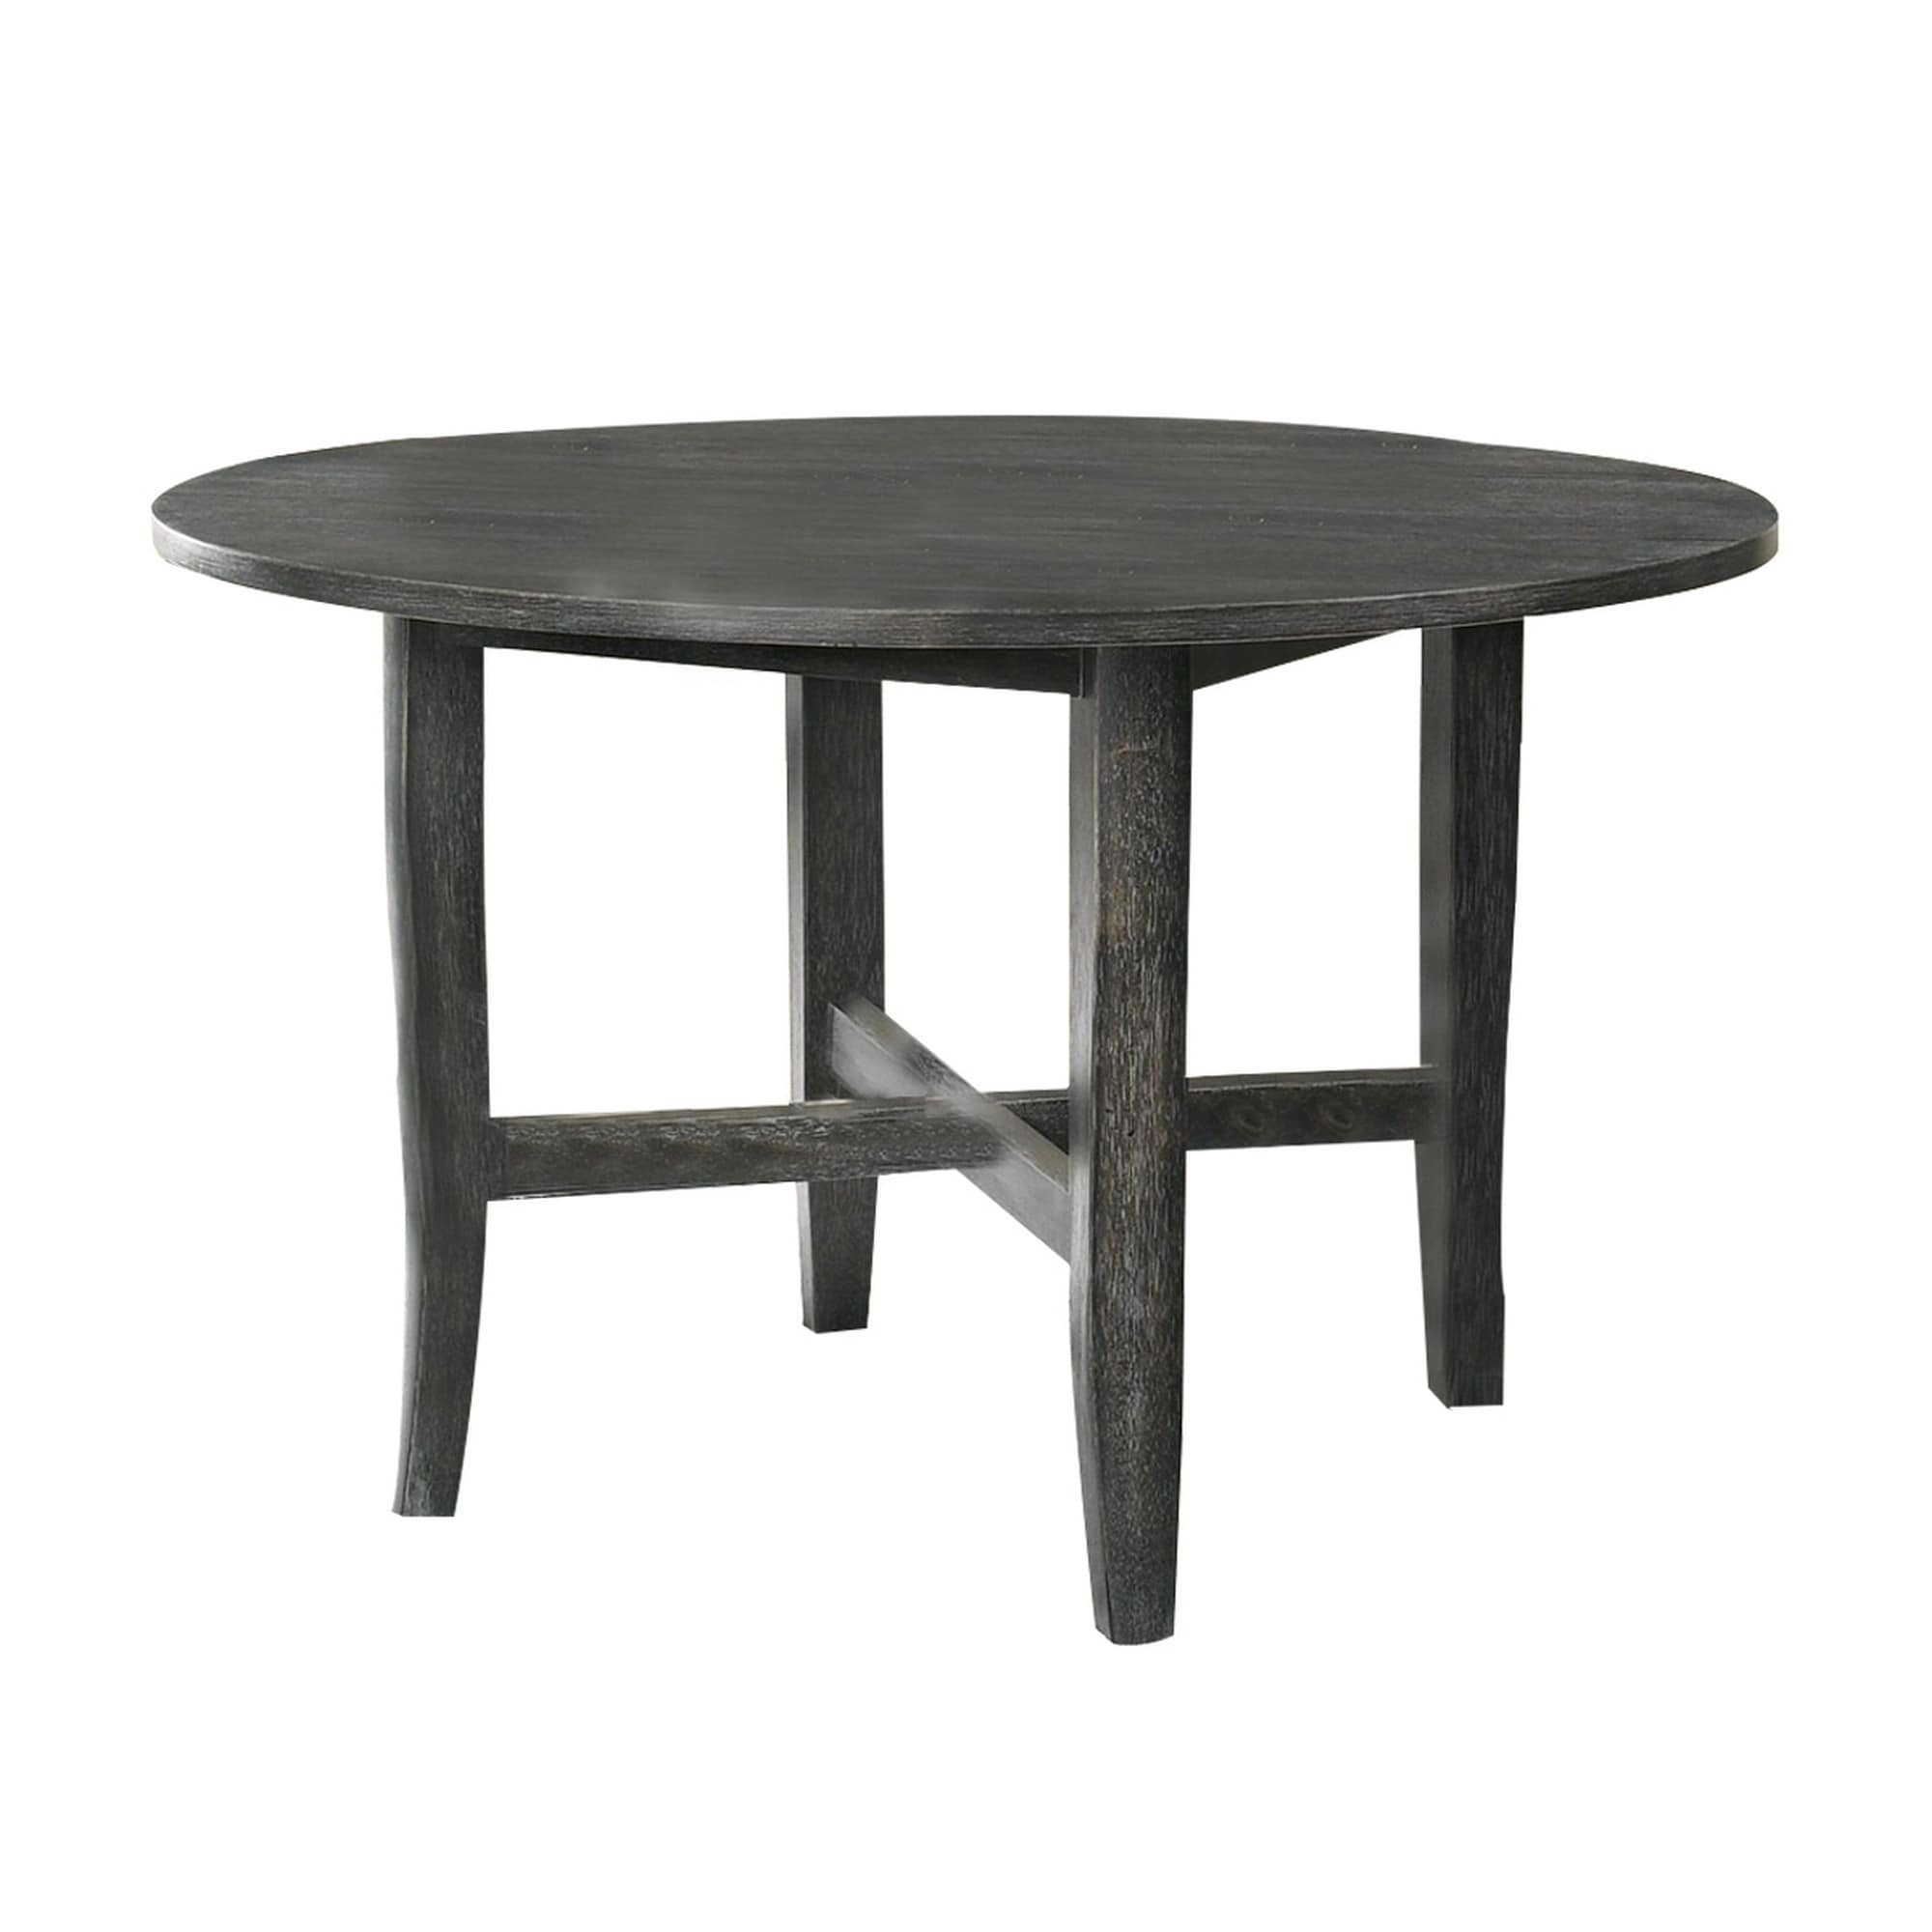 47 Inch Farmhouse Style Round Wooden Dining Table Rustic Gray On Sale Overstock 31768302